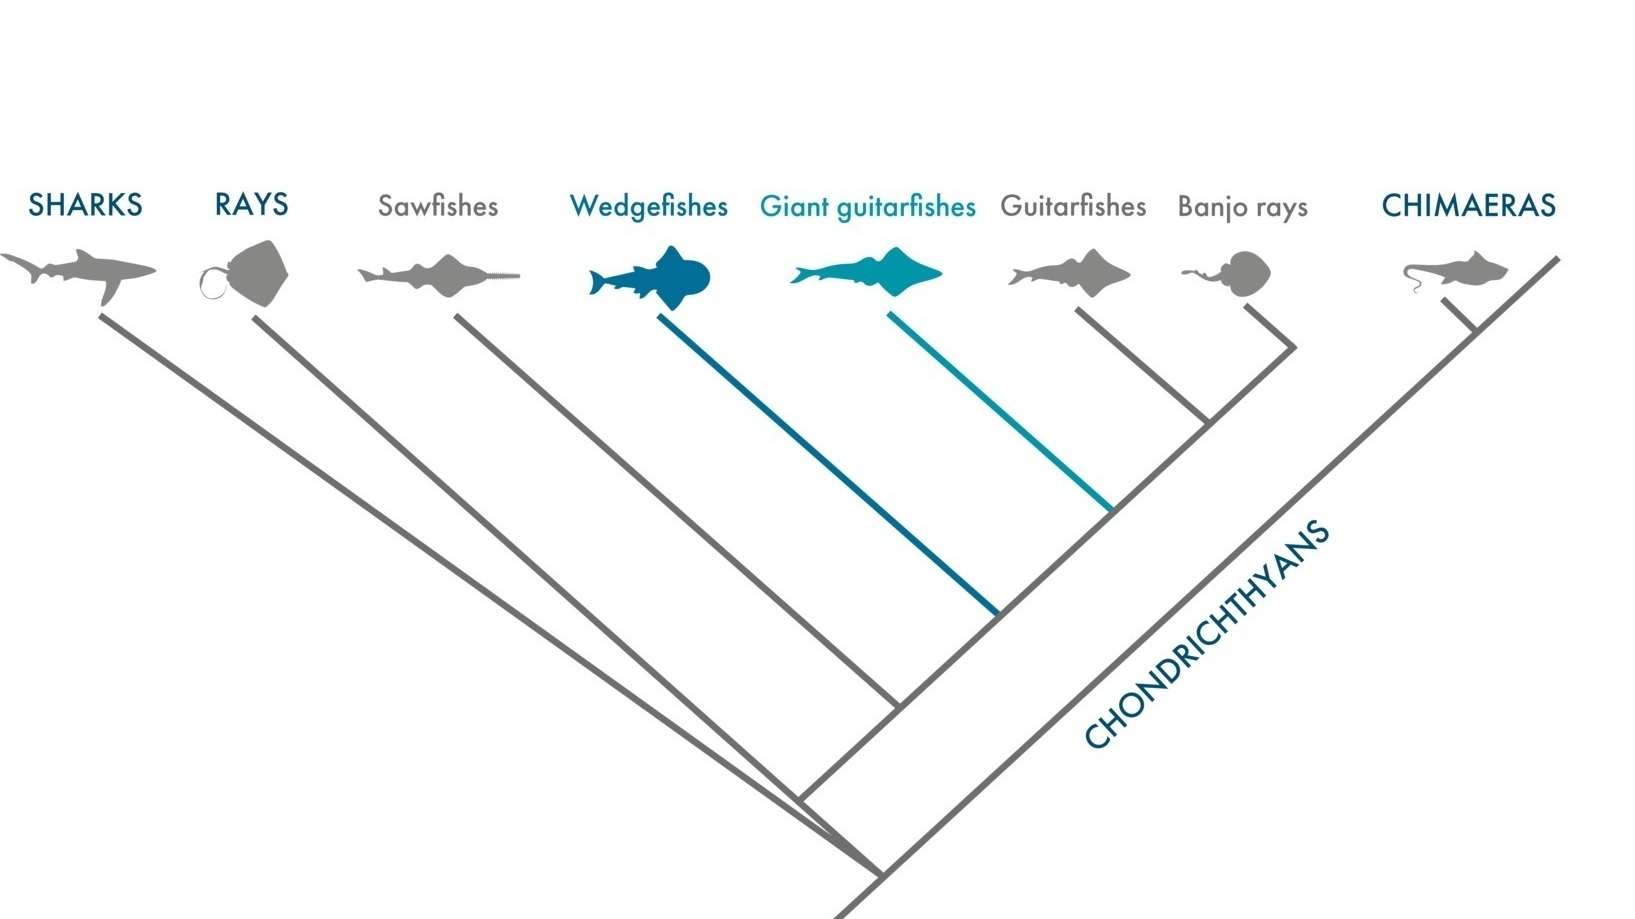 Phylogeny of giant guitarfishes and wedgefishes | Gulf Elasmo Project - Rima W. Jabado